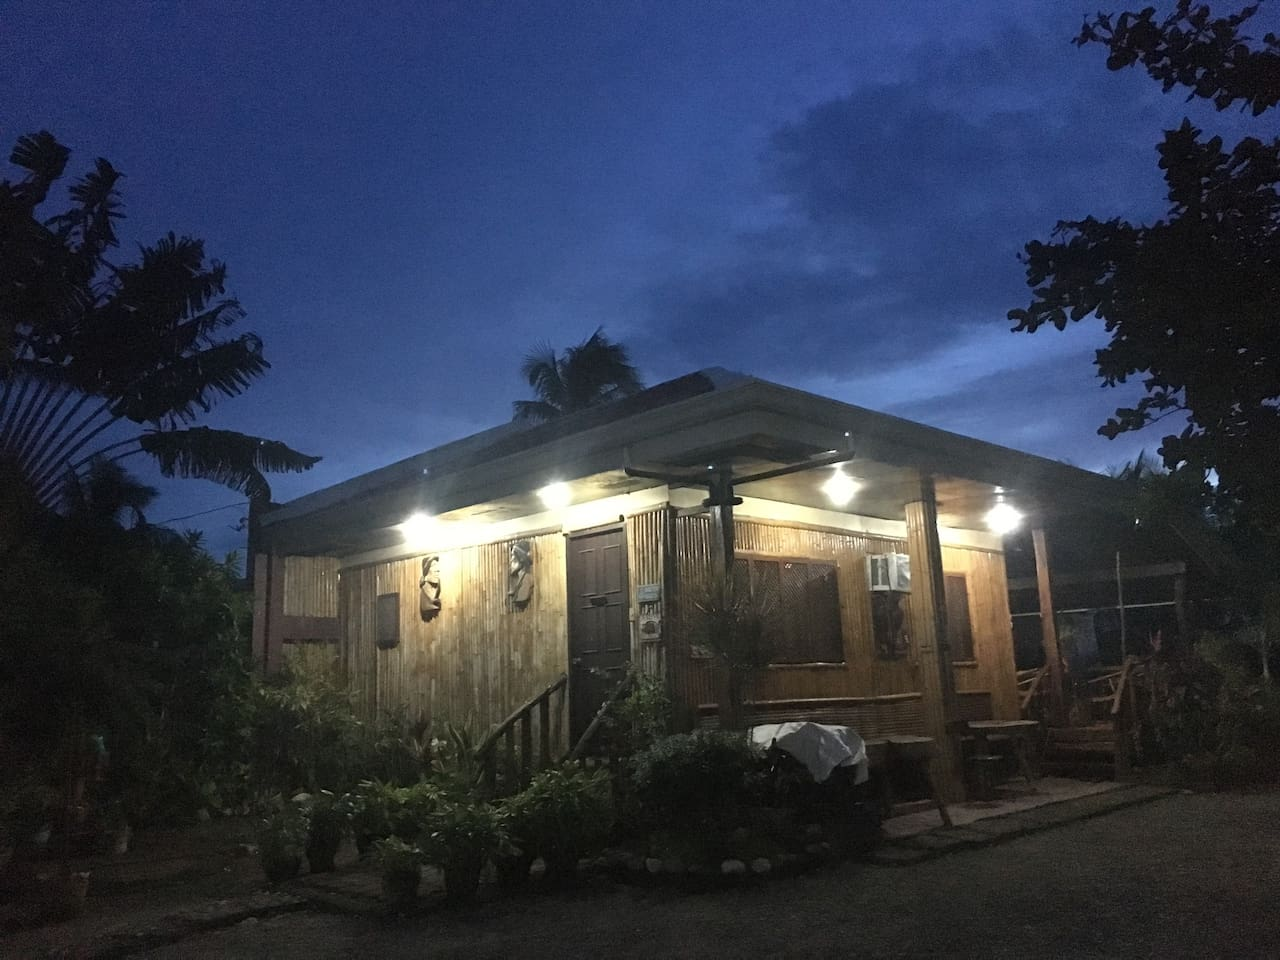 This is our modern bahay-kubo which can comfortably accommodate a family of 4-6 people.